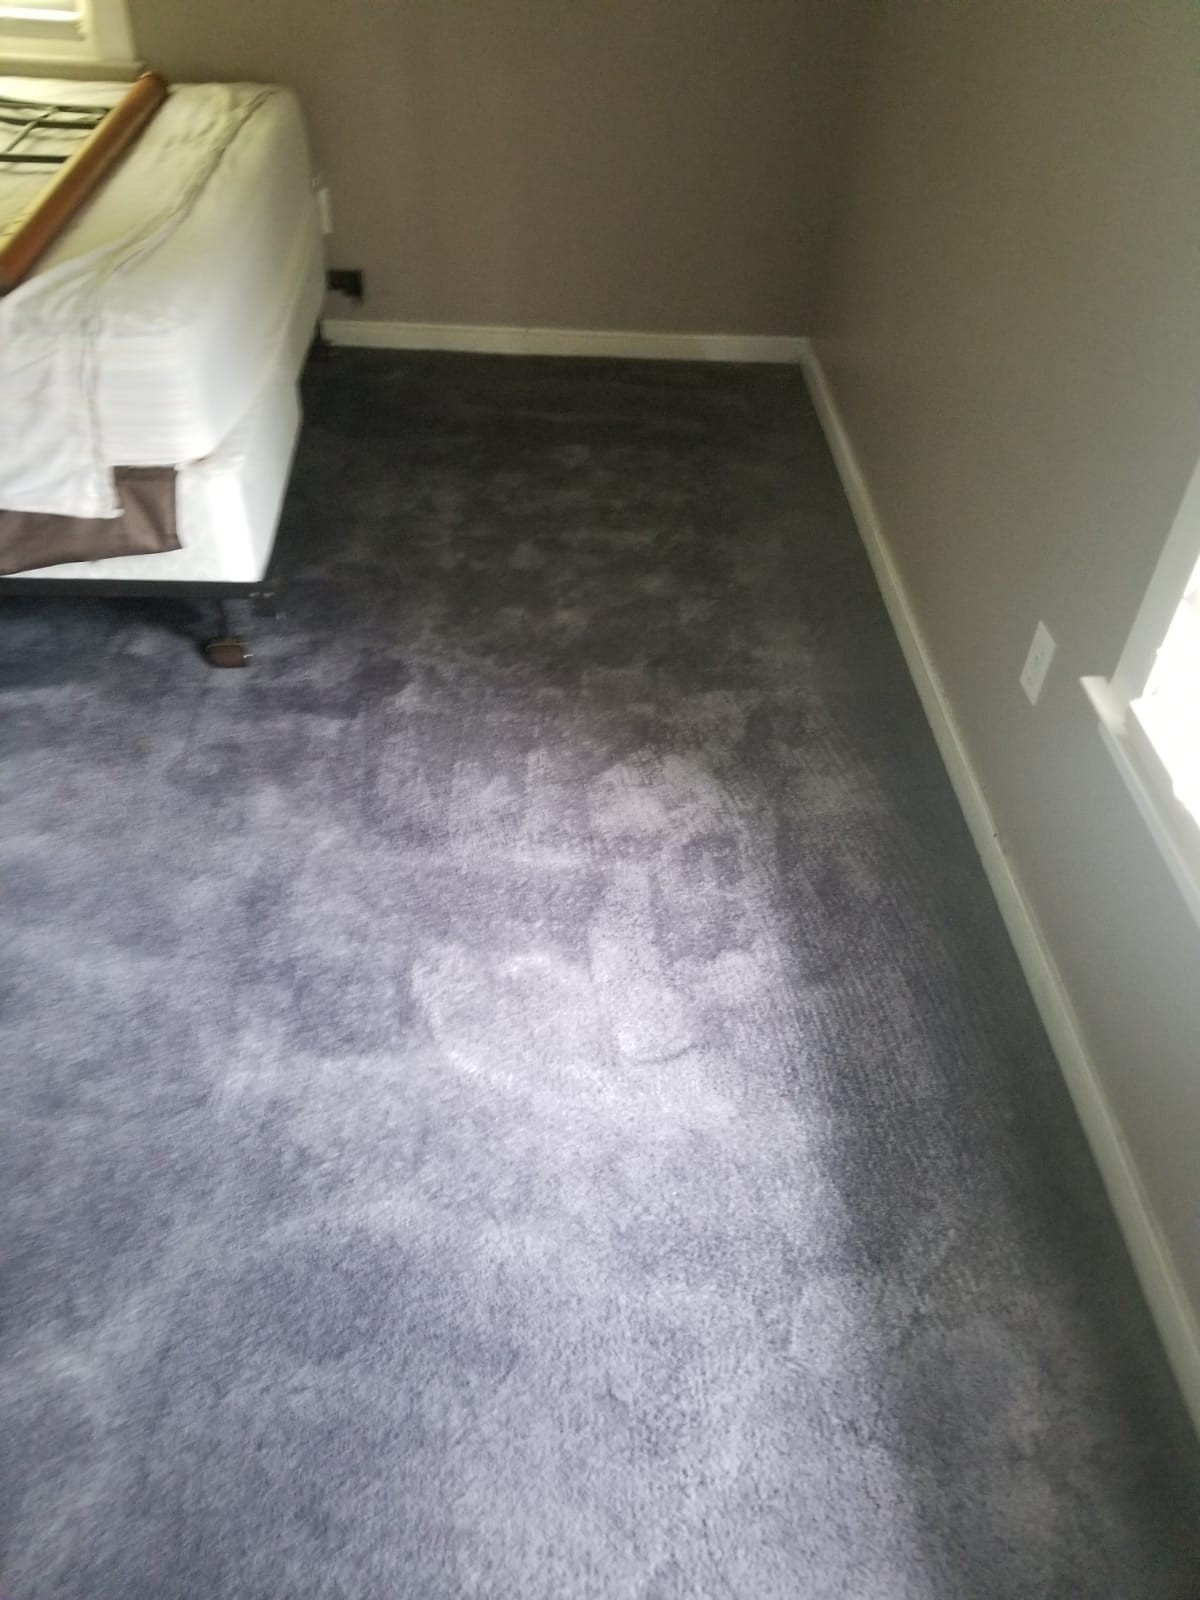 Carpet Color Change in Midlothian, VA